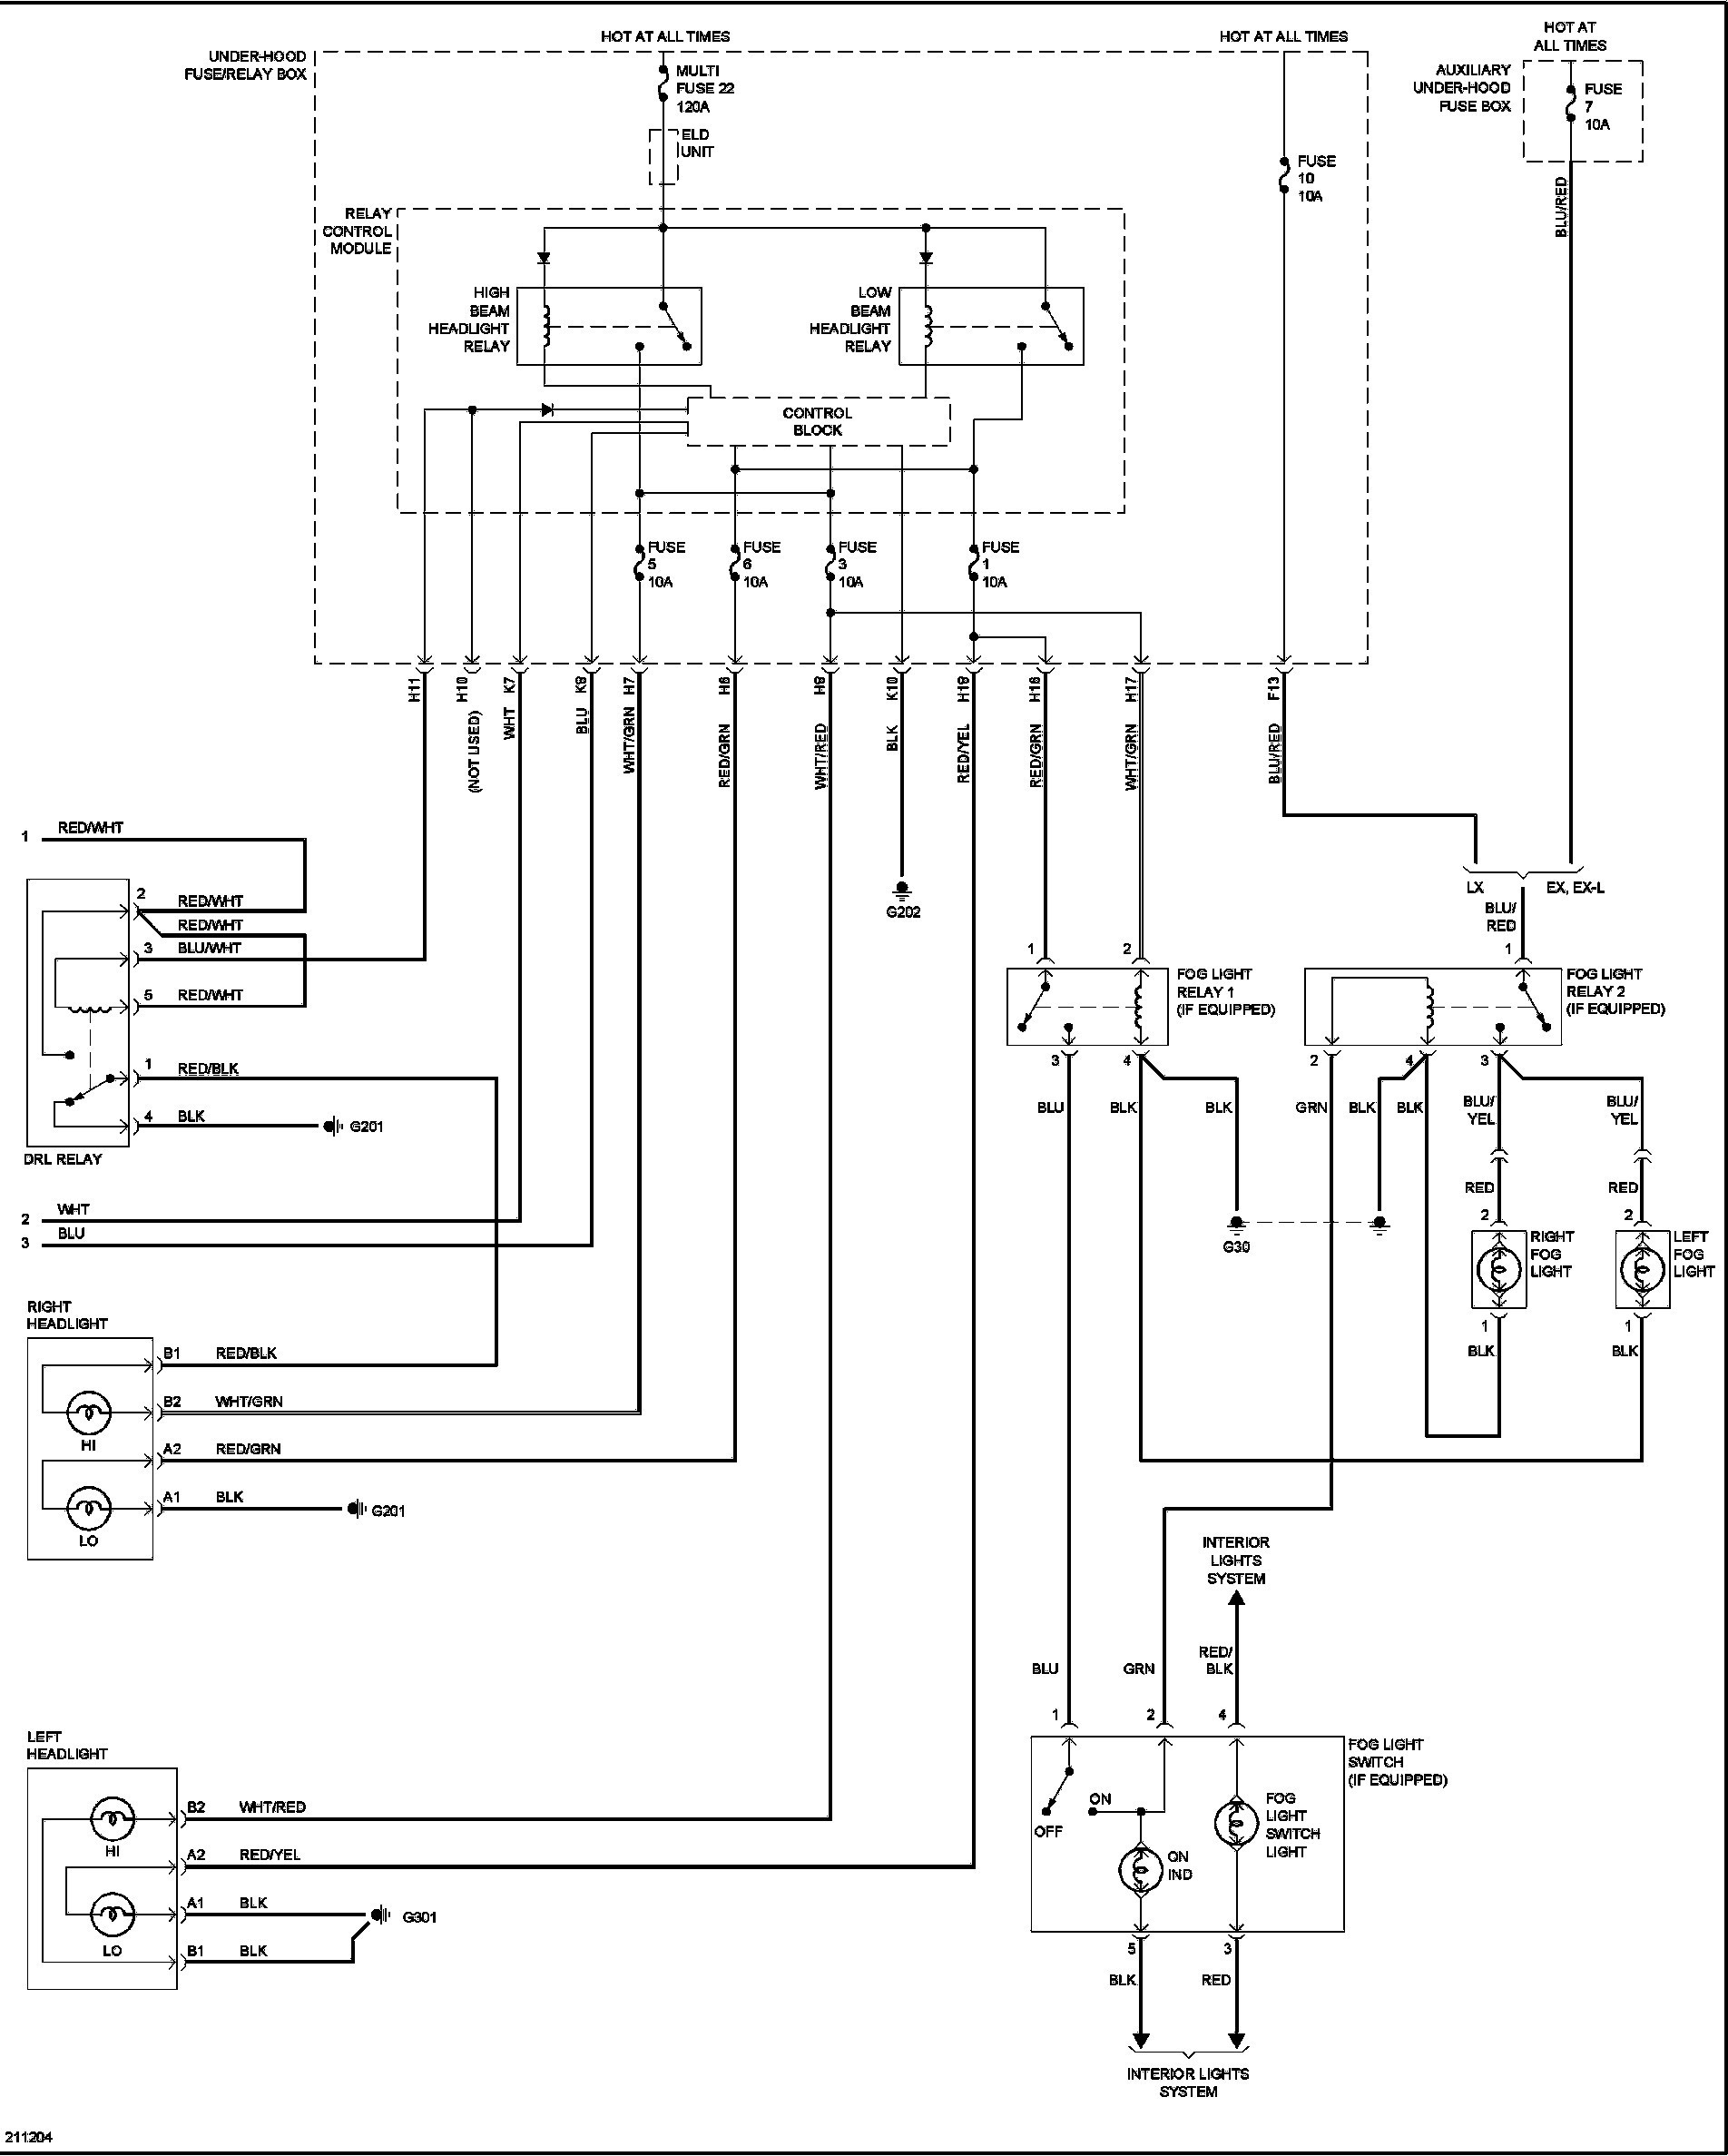 2004 honda odyssey wiring diagrams - wiring diagram schematic road-total-a  - road-total-a.aliceviola.it  aliceviola.it